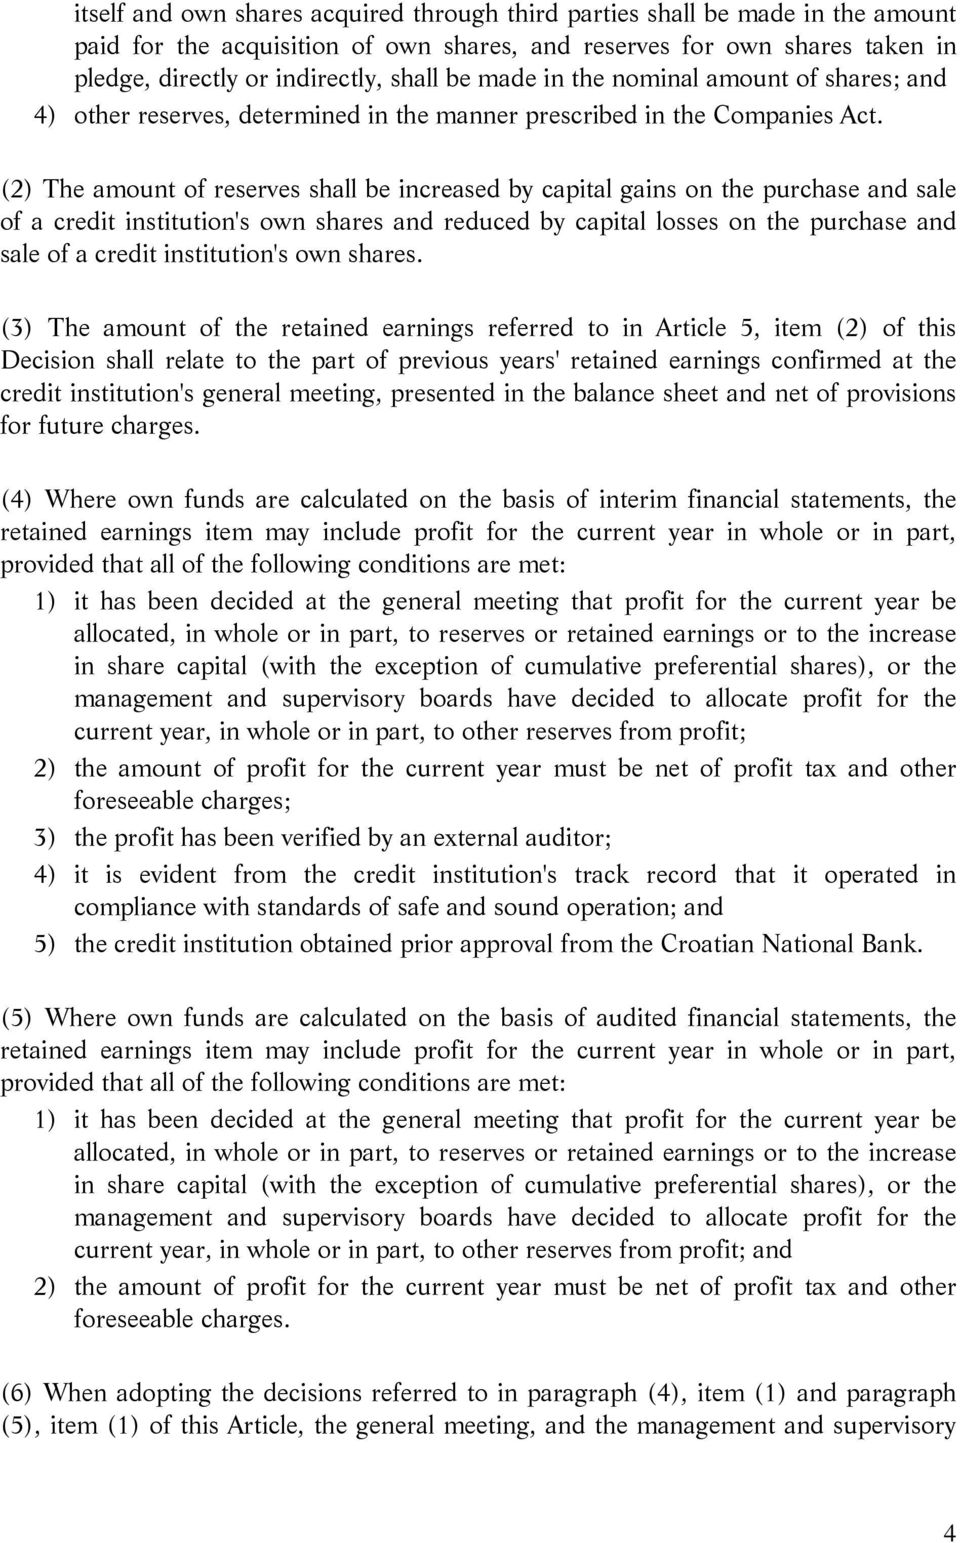 (2) The amount of reserves shall be increased by capital gains on the purchase and sale of a credit institution's own shares and reduced by capital losses on the purchase and sale of a credit